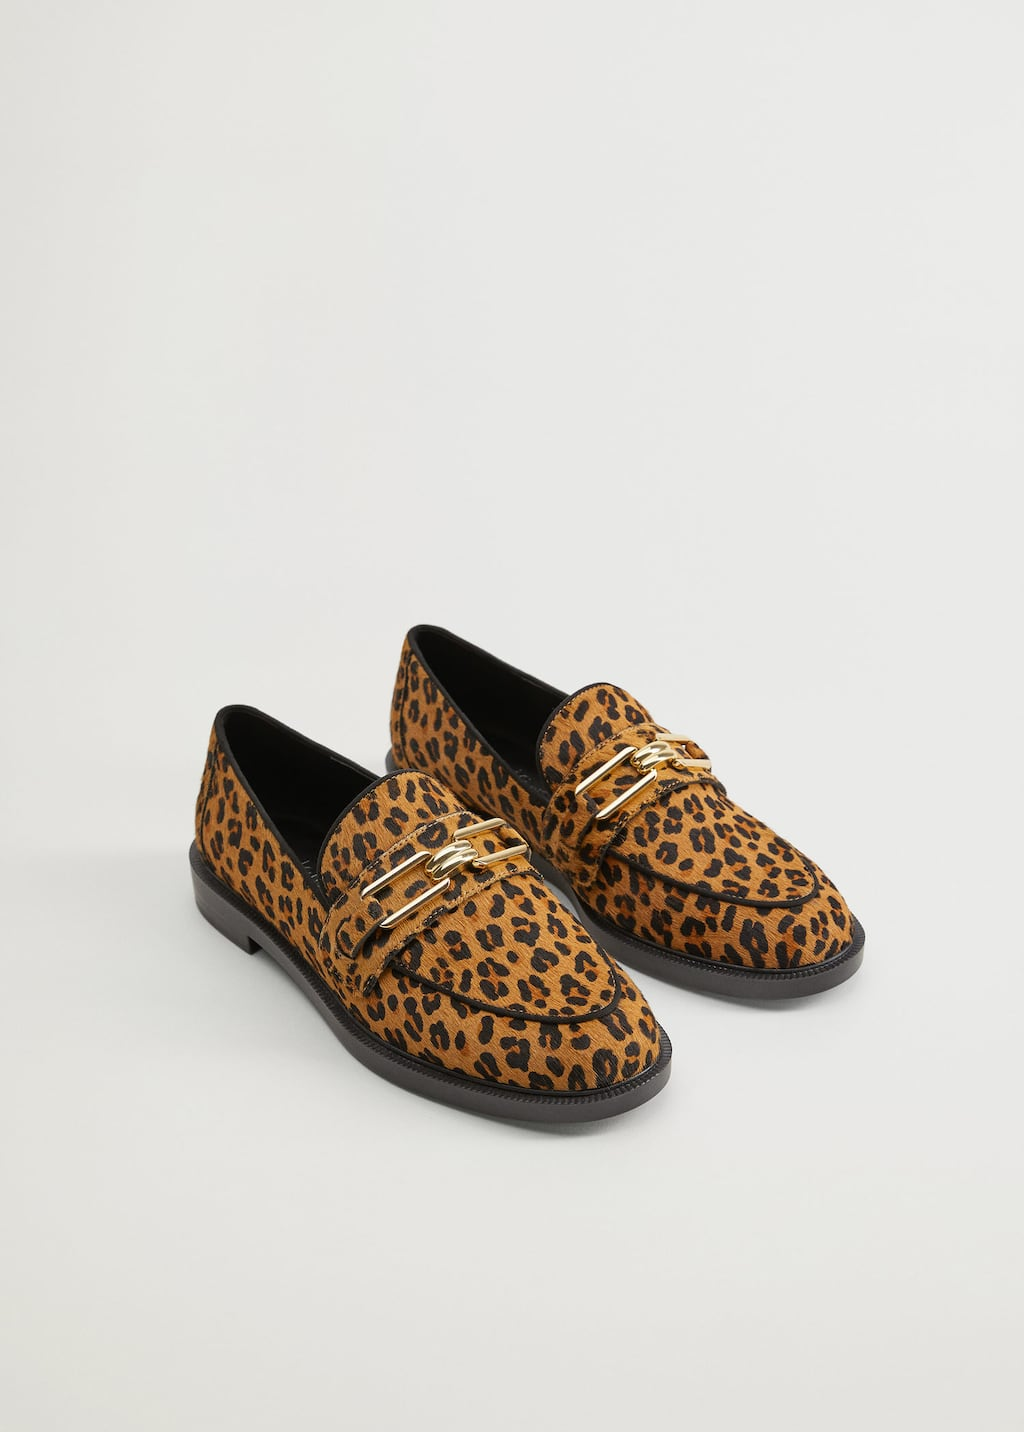 Link leather loafers - Medium plane